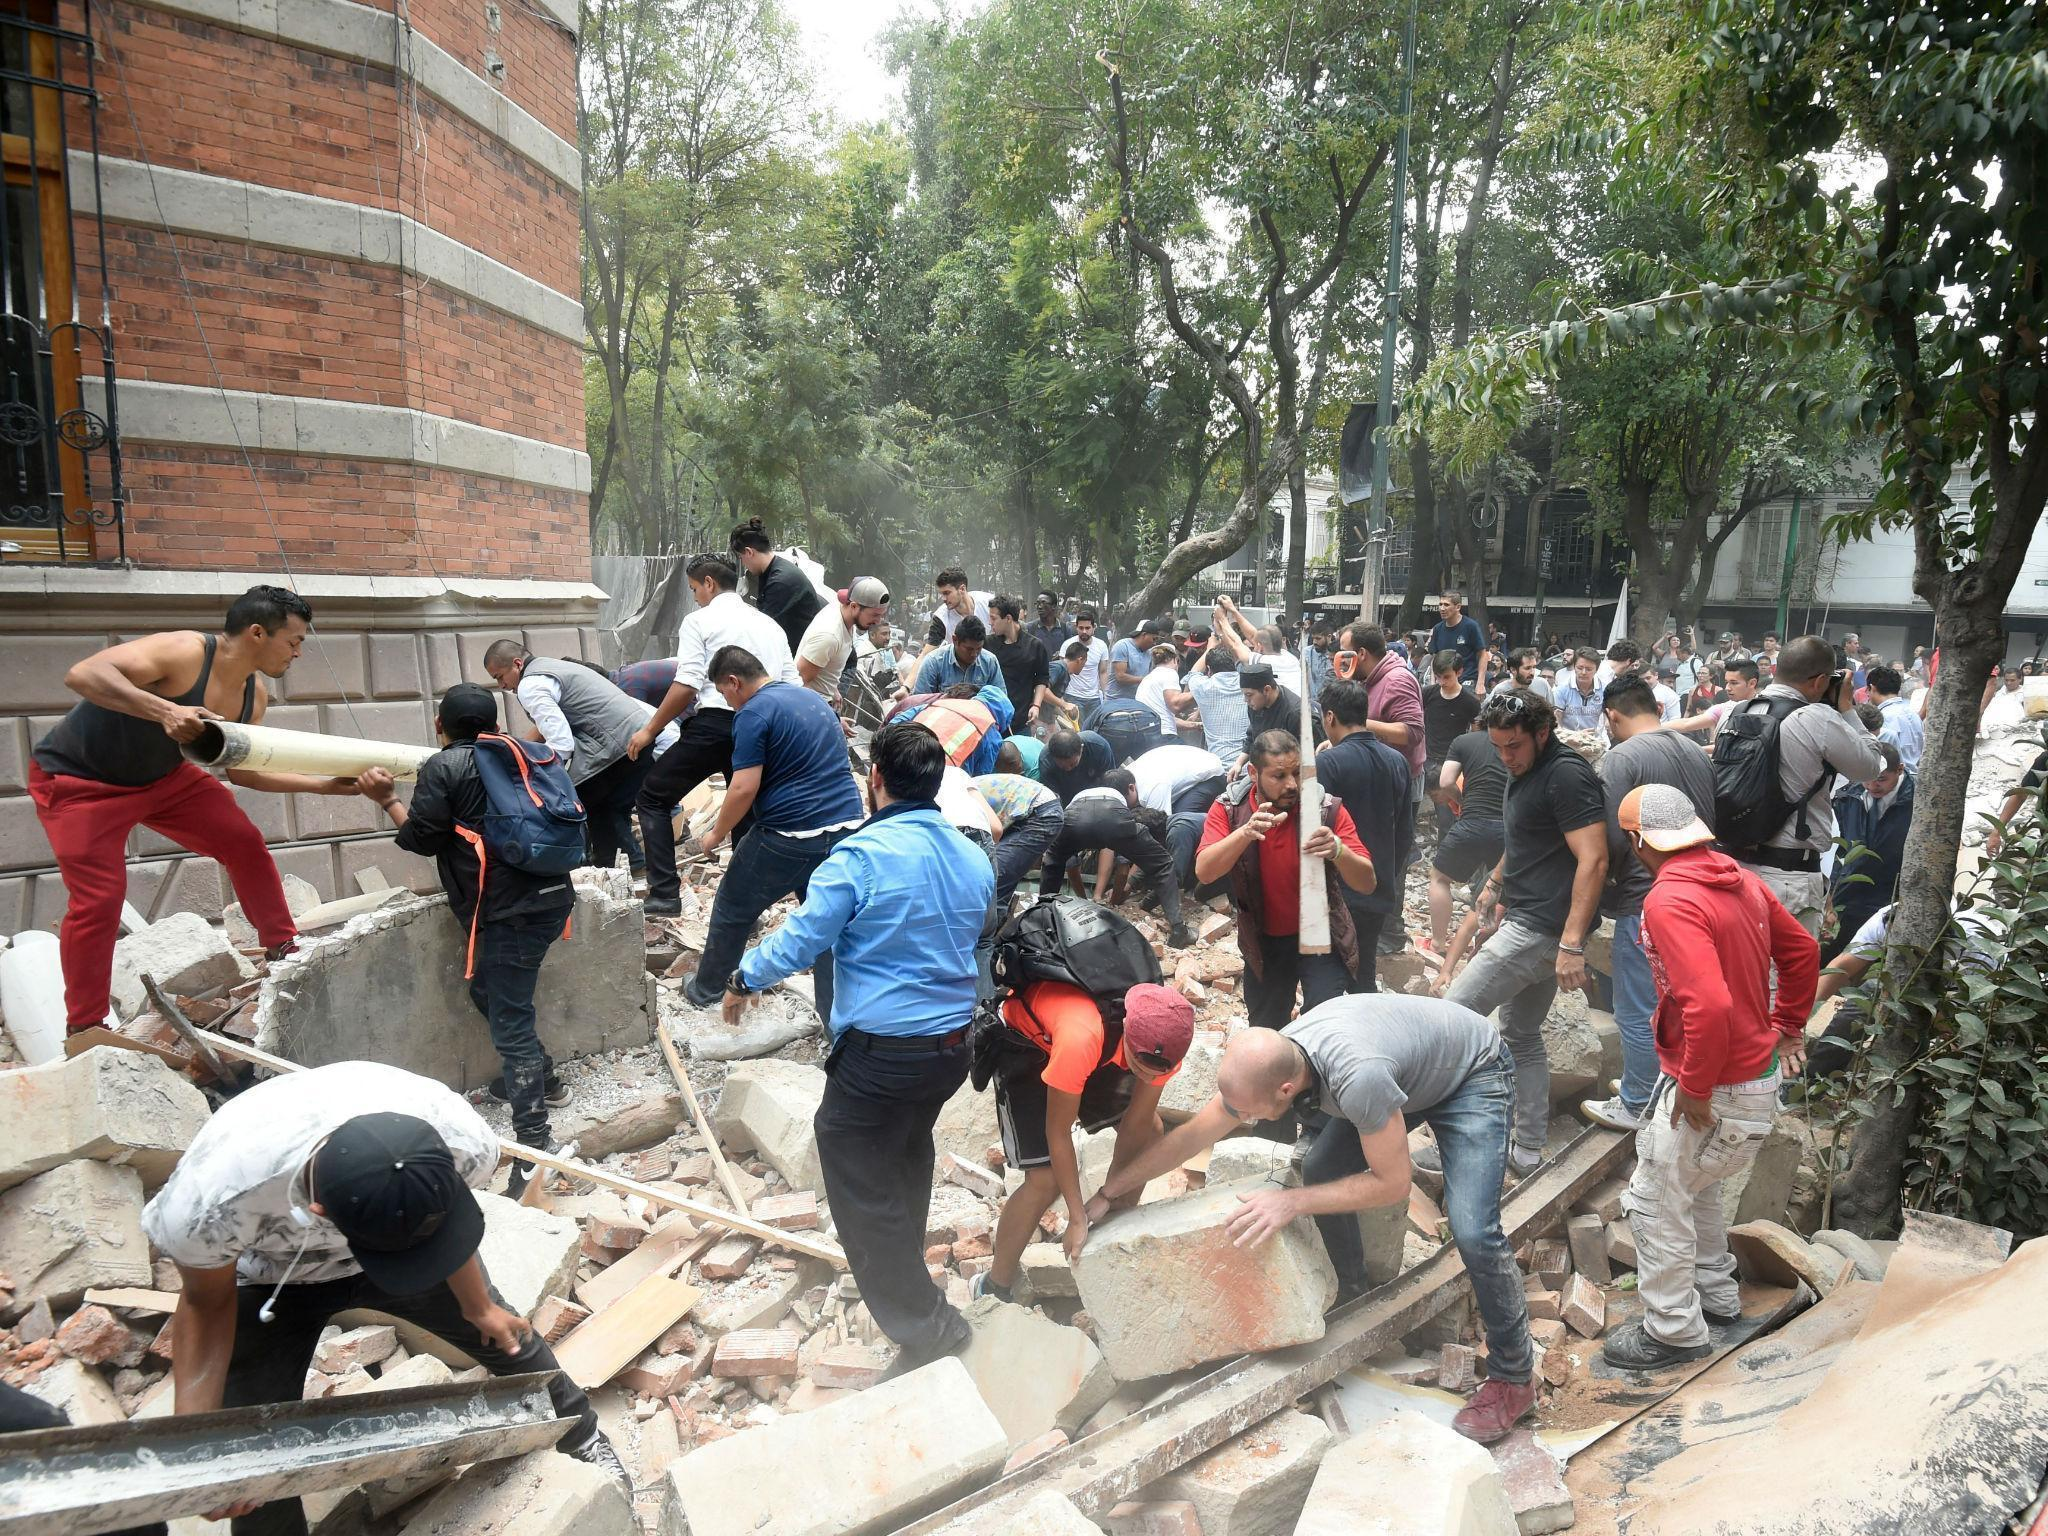 An earthquake in Mexico City has caused buildings to collapse. Get the latest live updates here